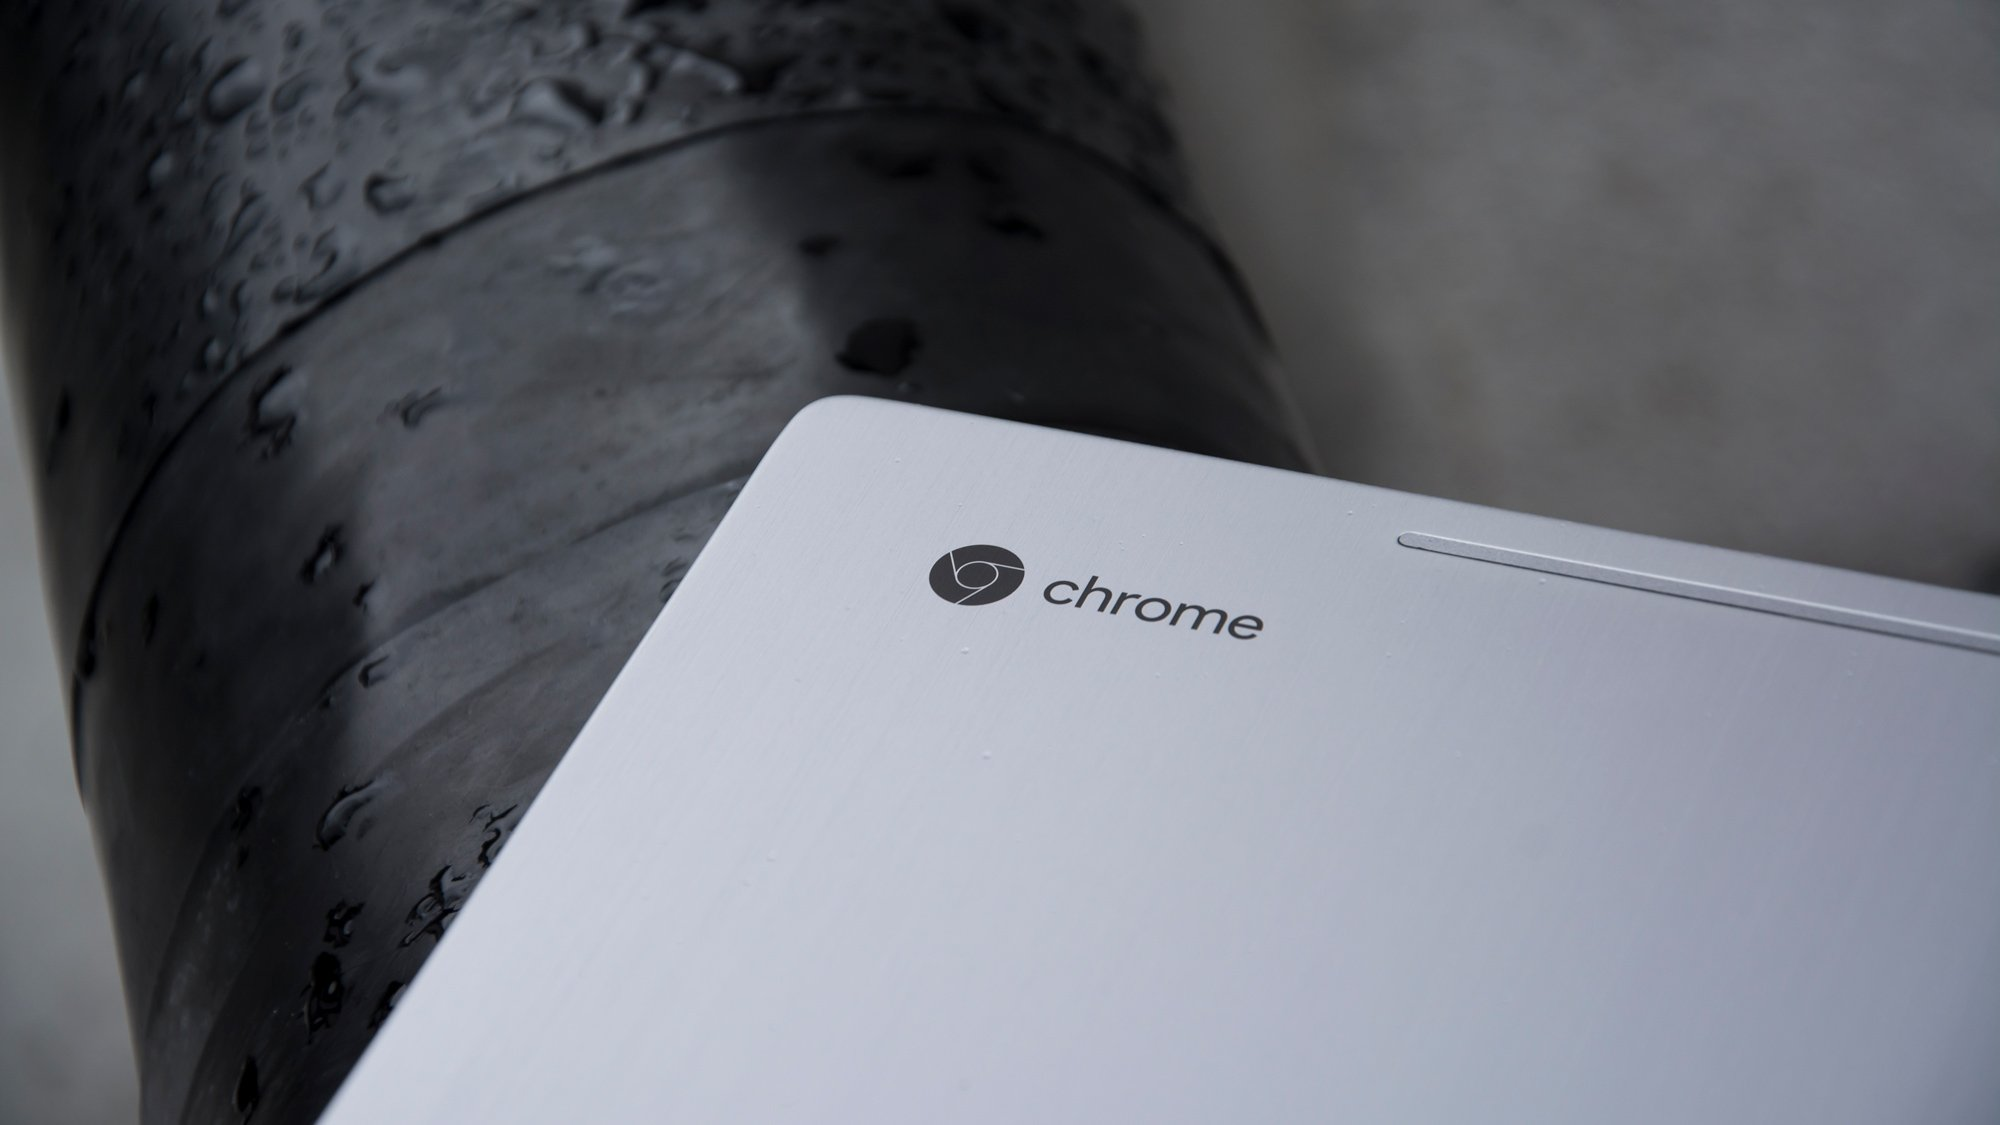 Best Chromebook 2019: The top Chrome OS laptops from Google, Dell